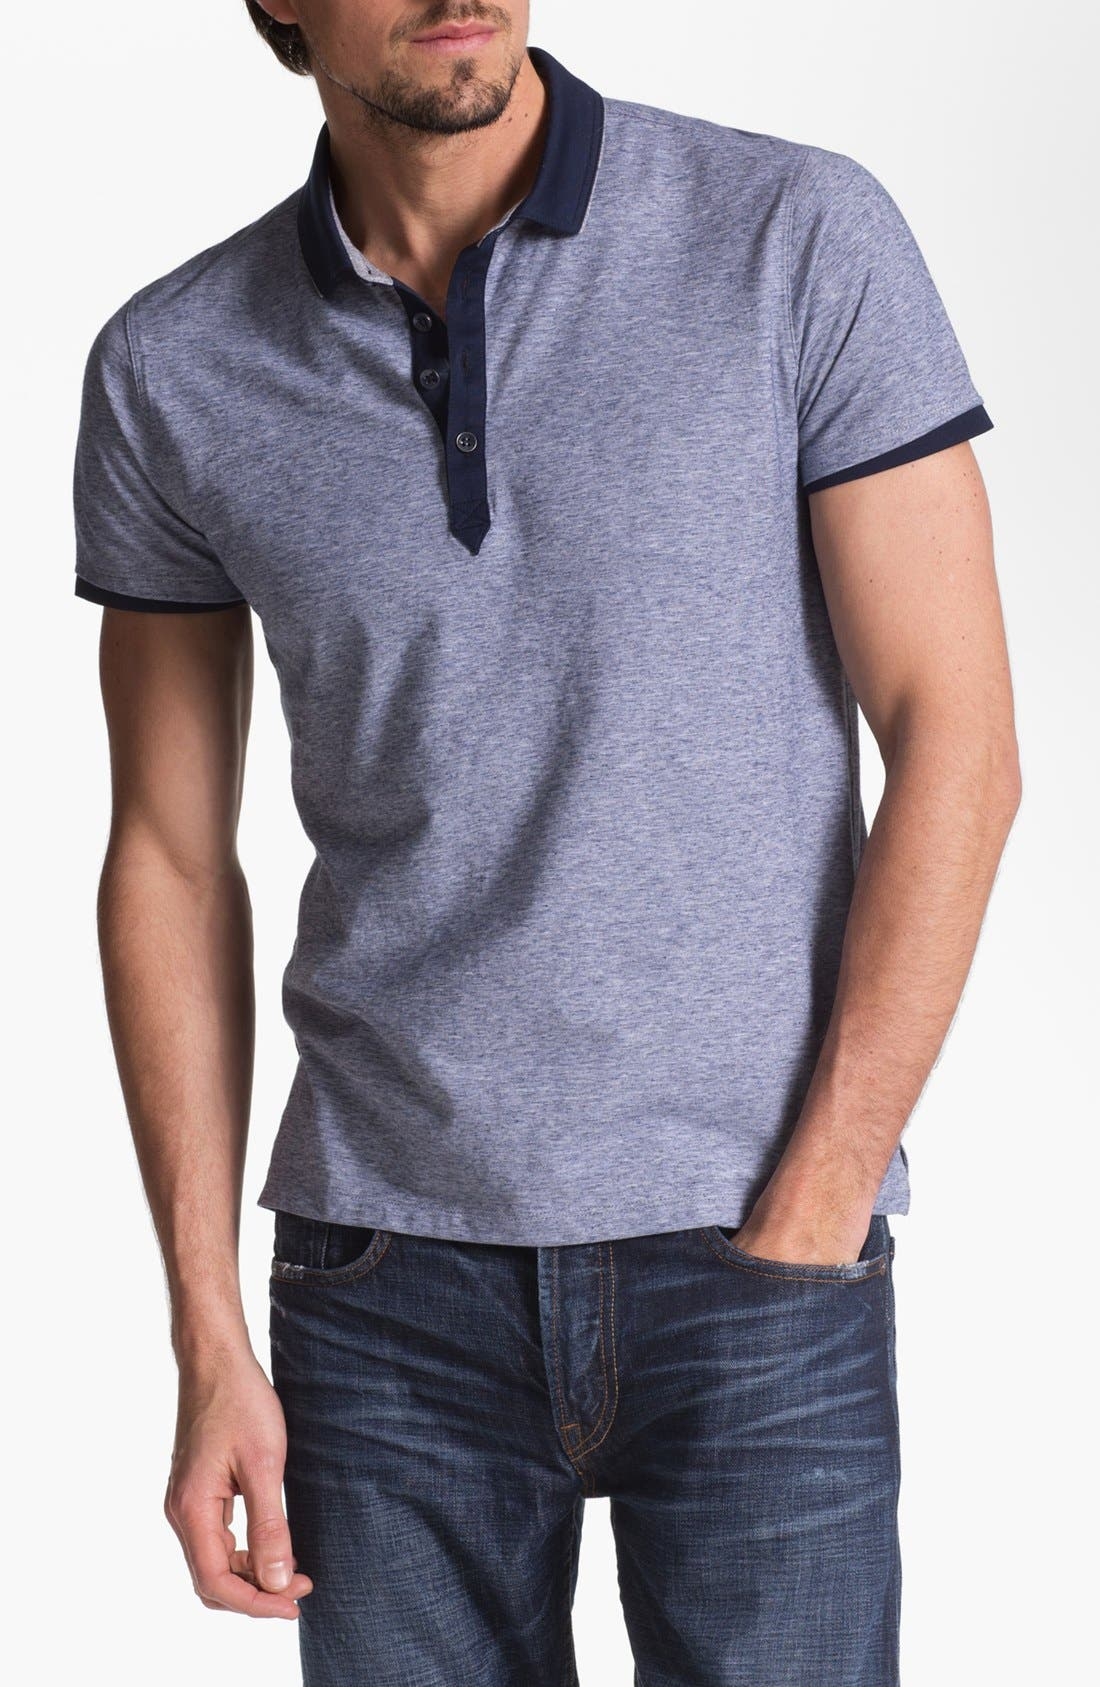 Alternate Image 1 Selected - BOSS HUGO BOSS 'Arpino' Slim Fit Polo